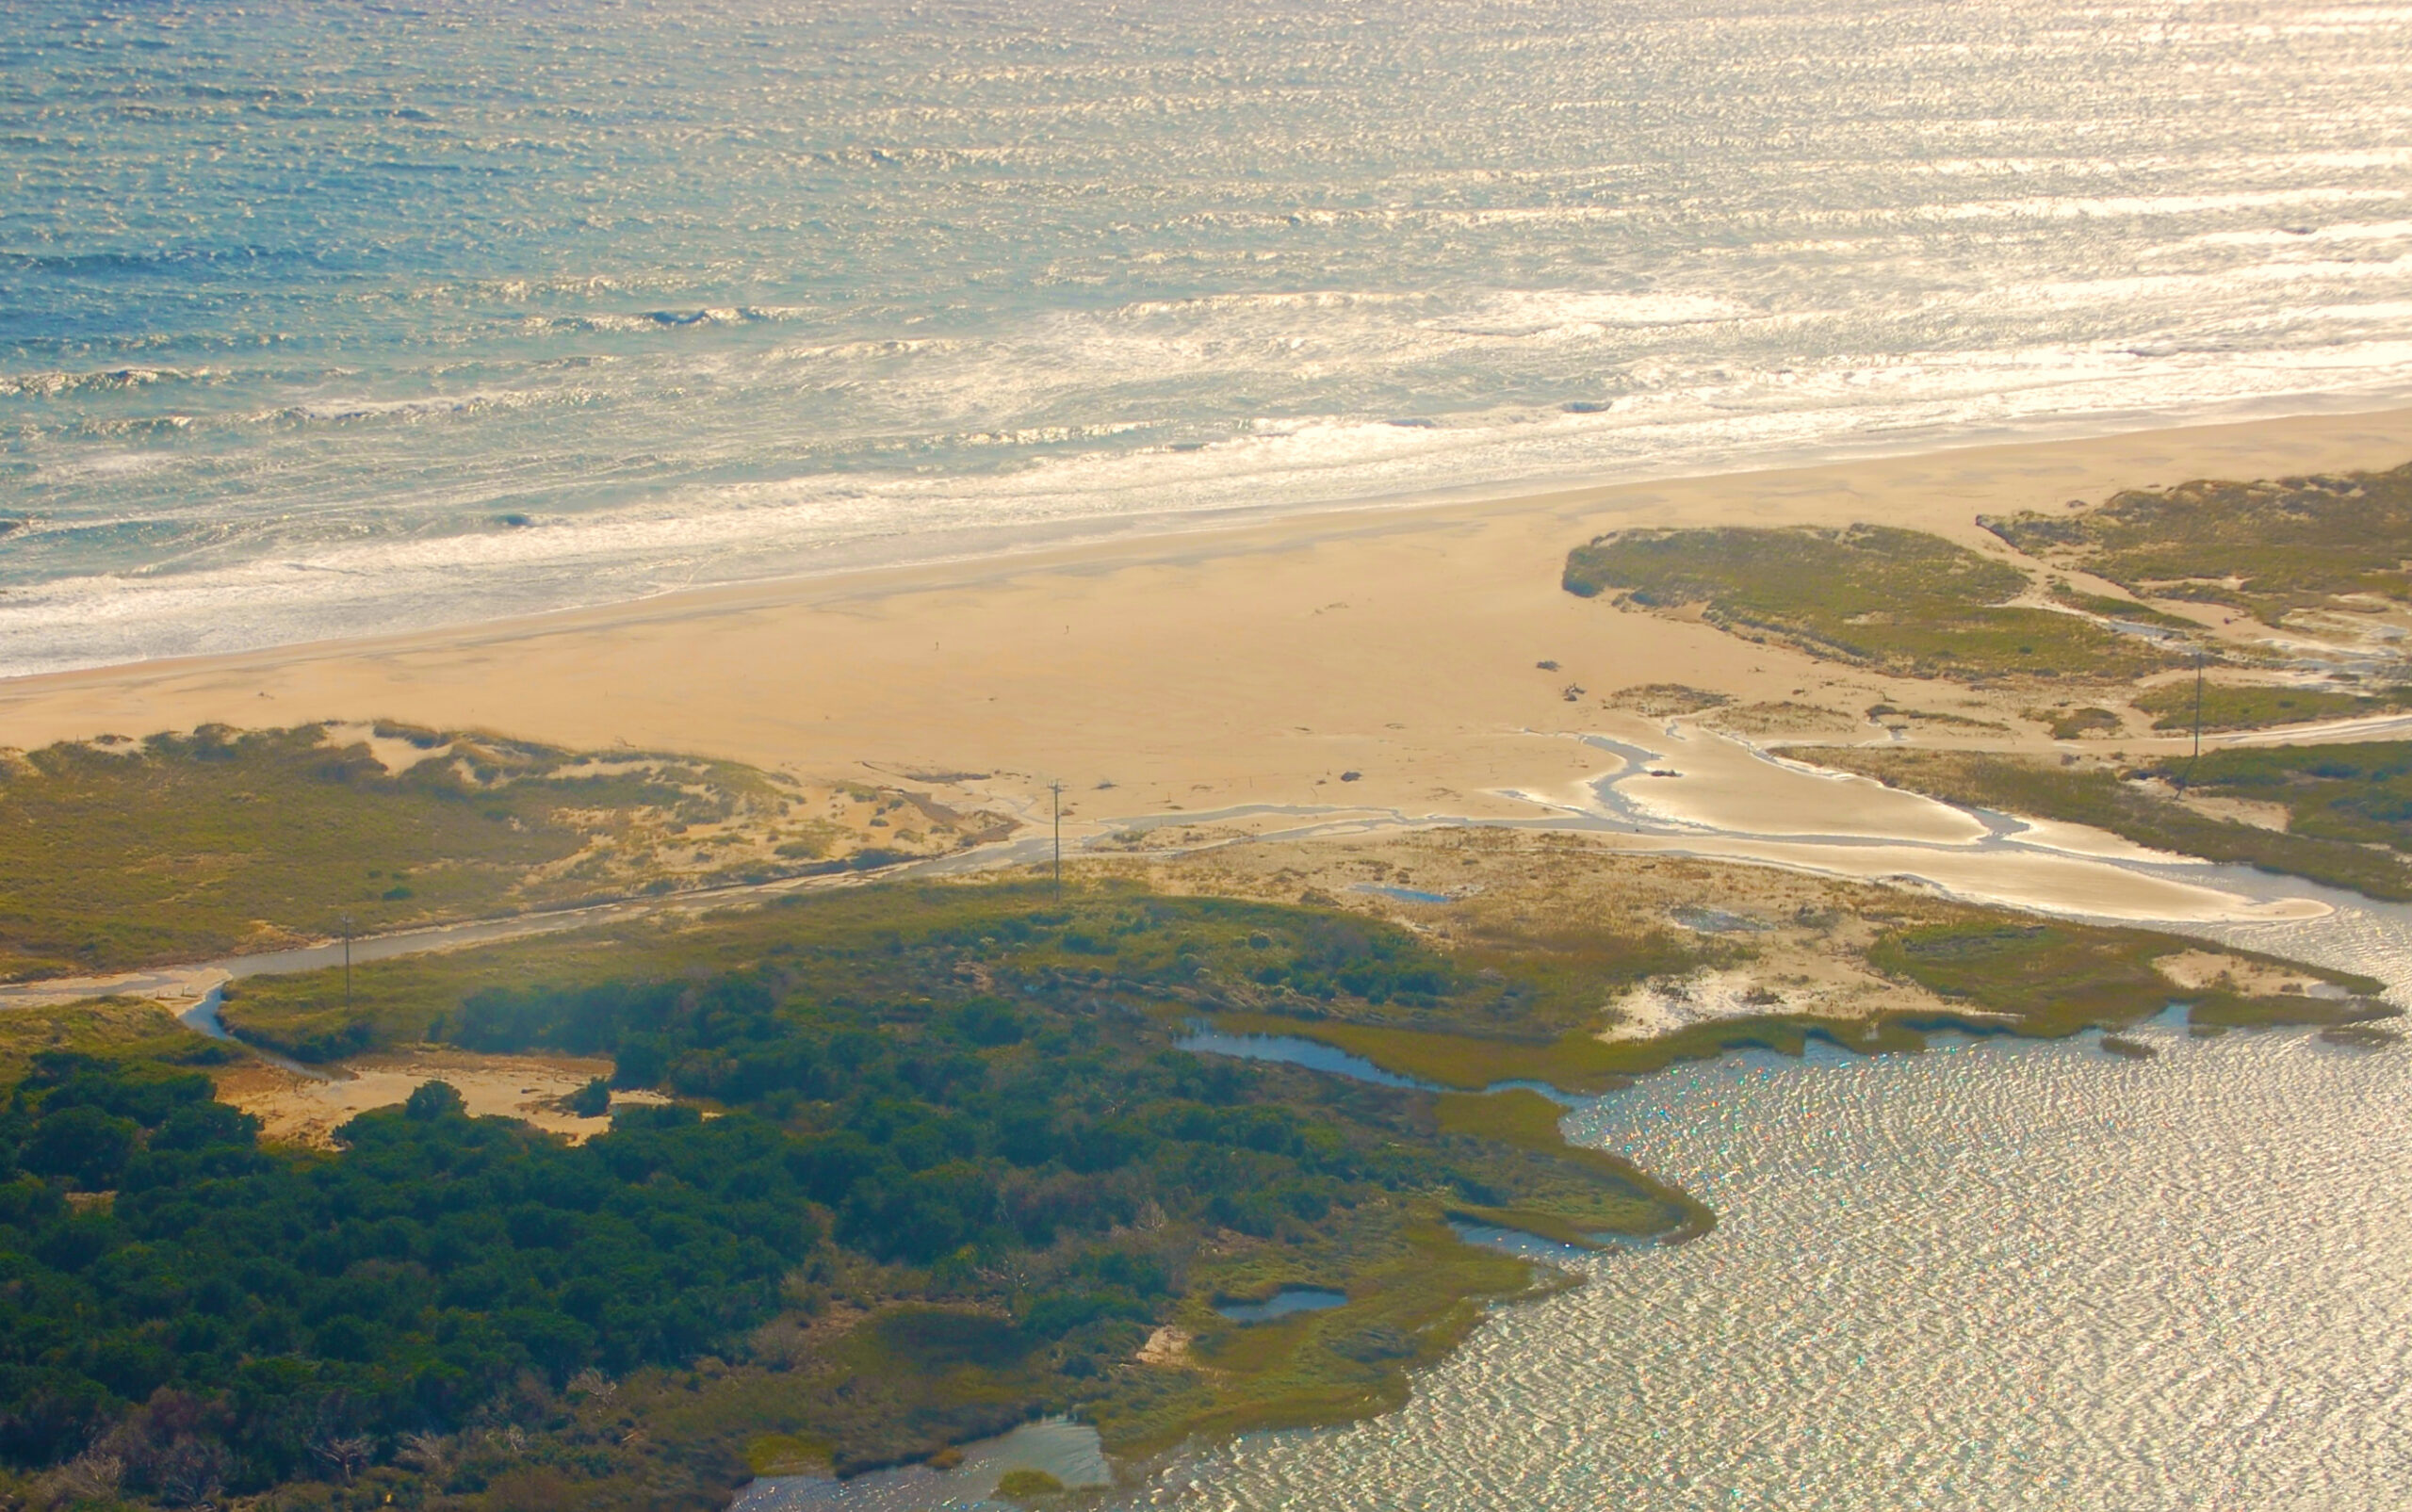 Coastal change increasingly confronts Hatteras Island residents with trouble spots like the one along NC 12 (lead photo), which Hurricane Irene caused, as well as new inlets and flooding from storms like Sandy. Both photos courtesy of NC DOT/CC BY 2.0.